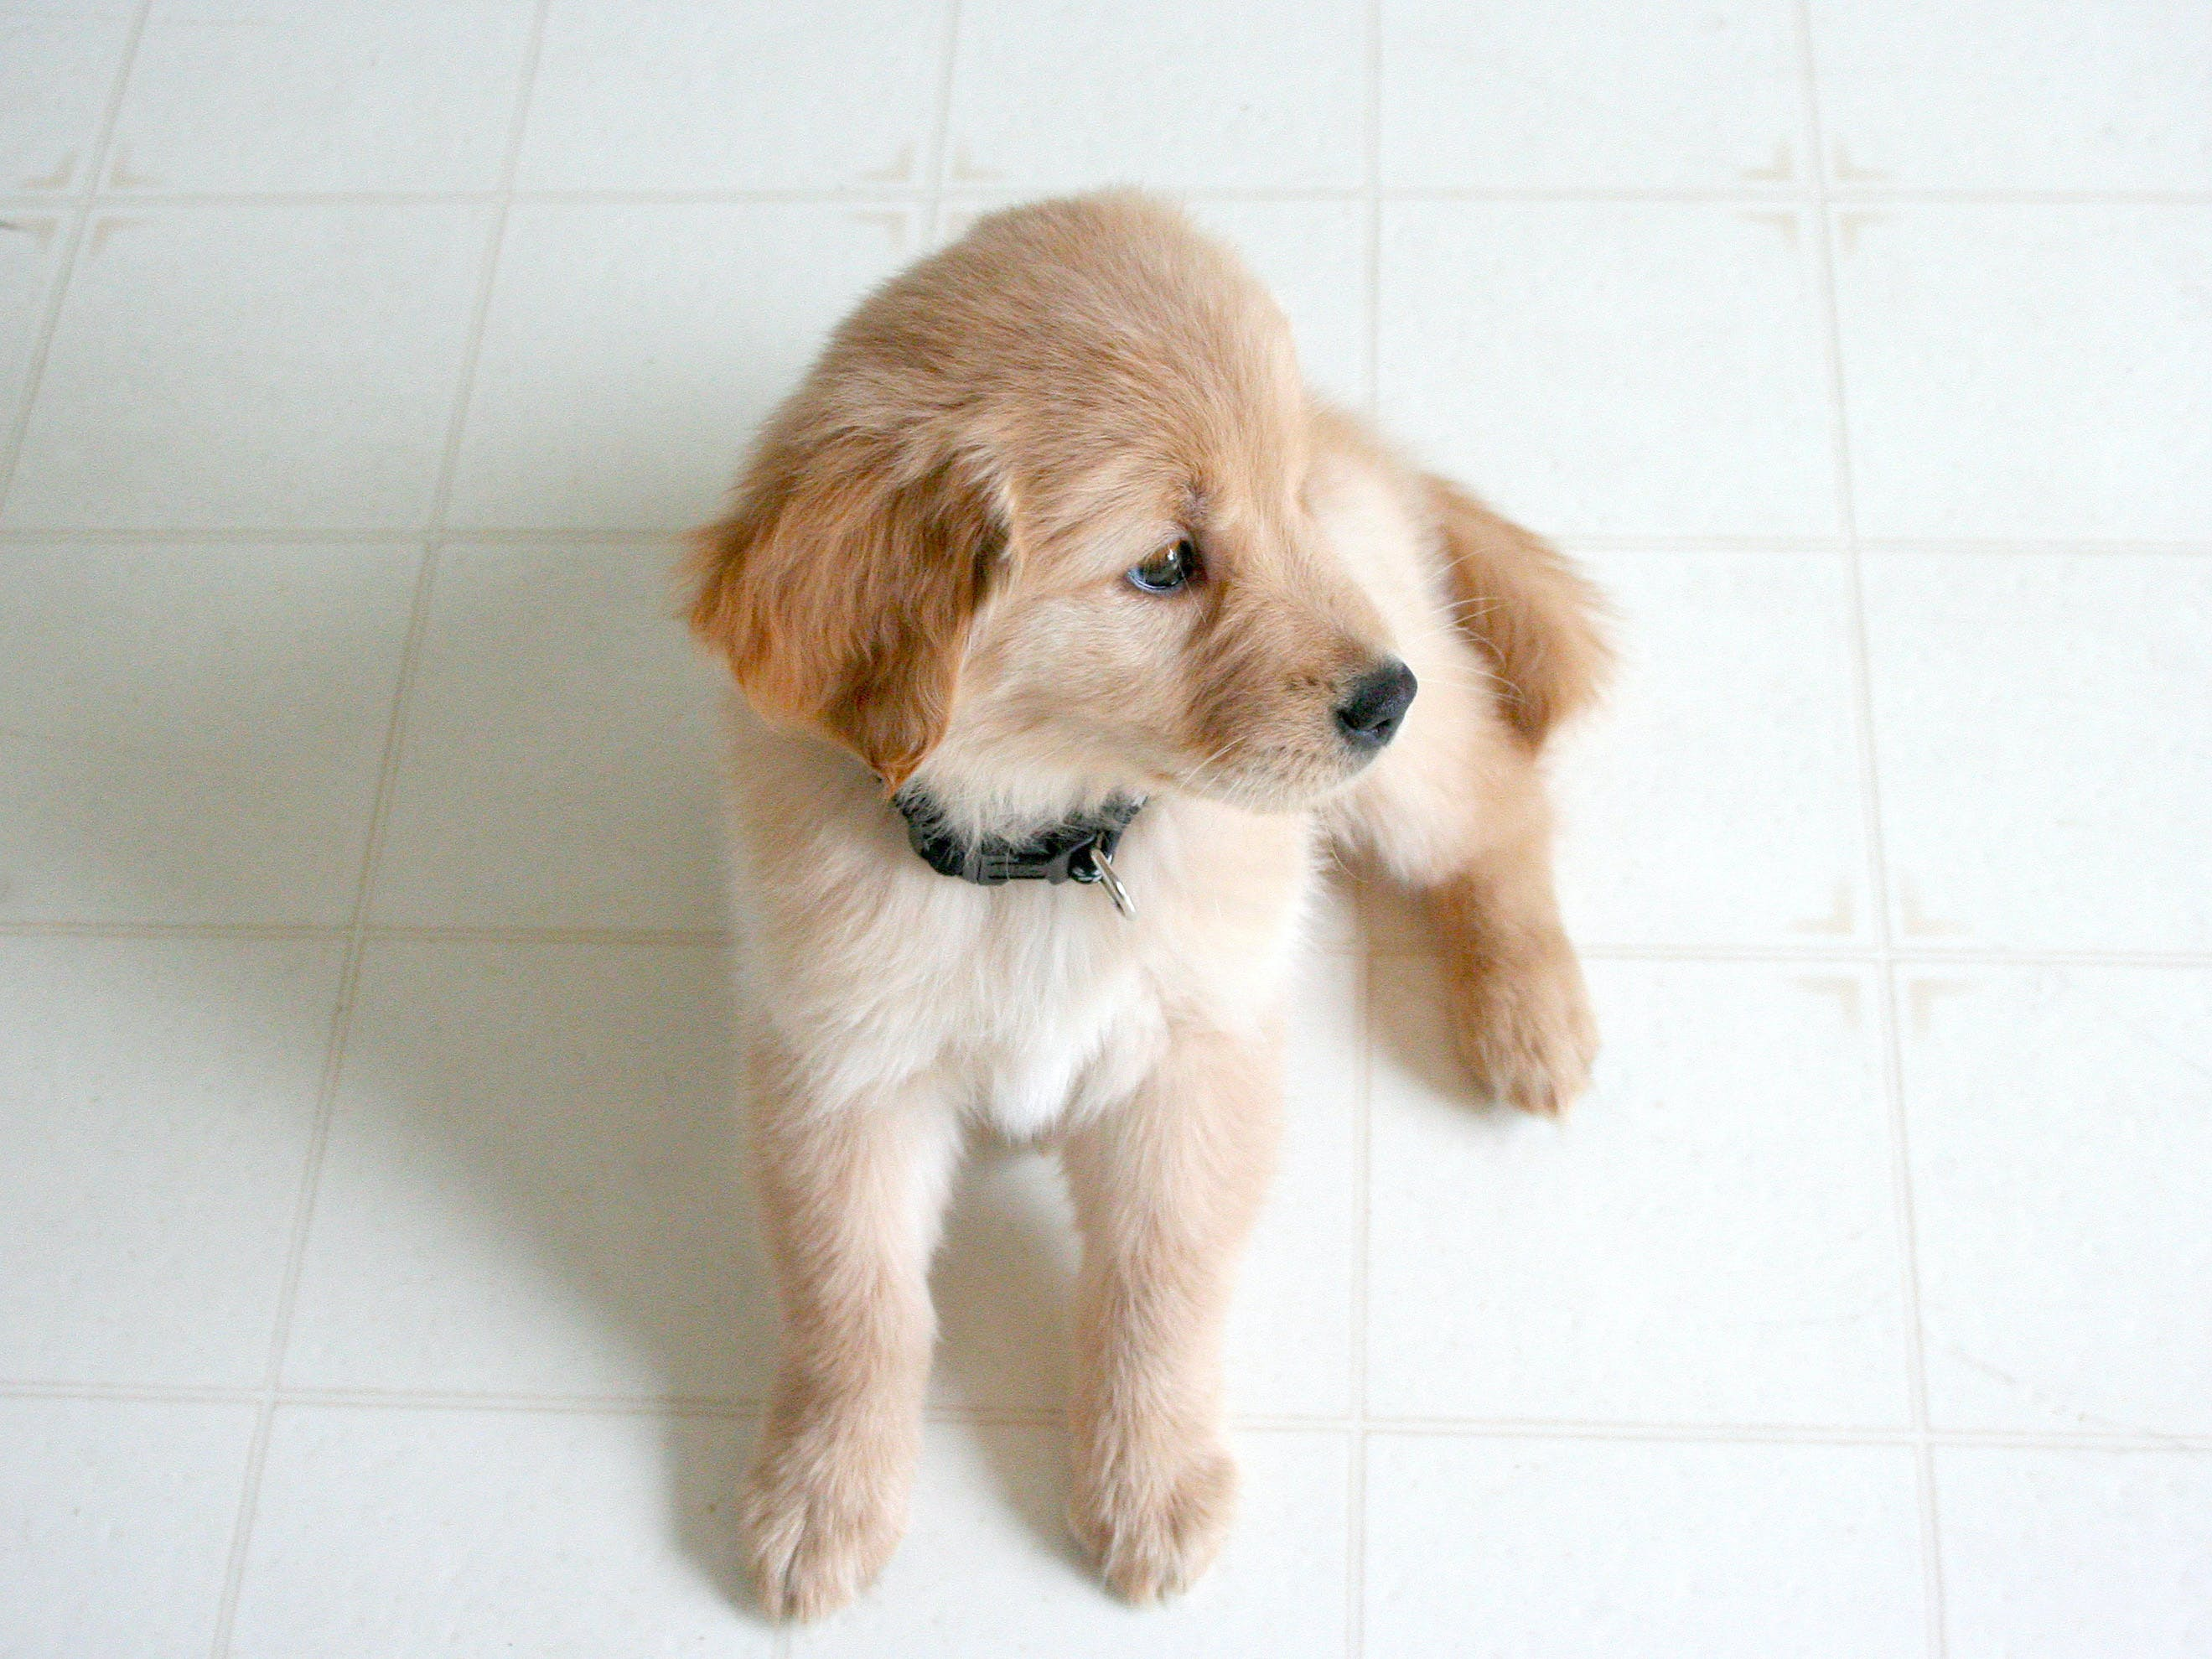 Golden Retriever Puppy on Marble Tile